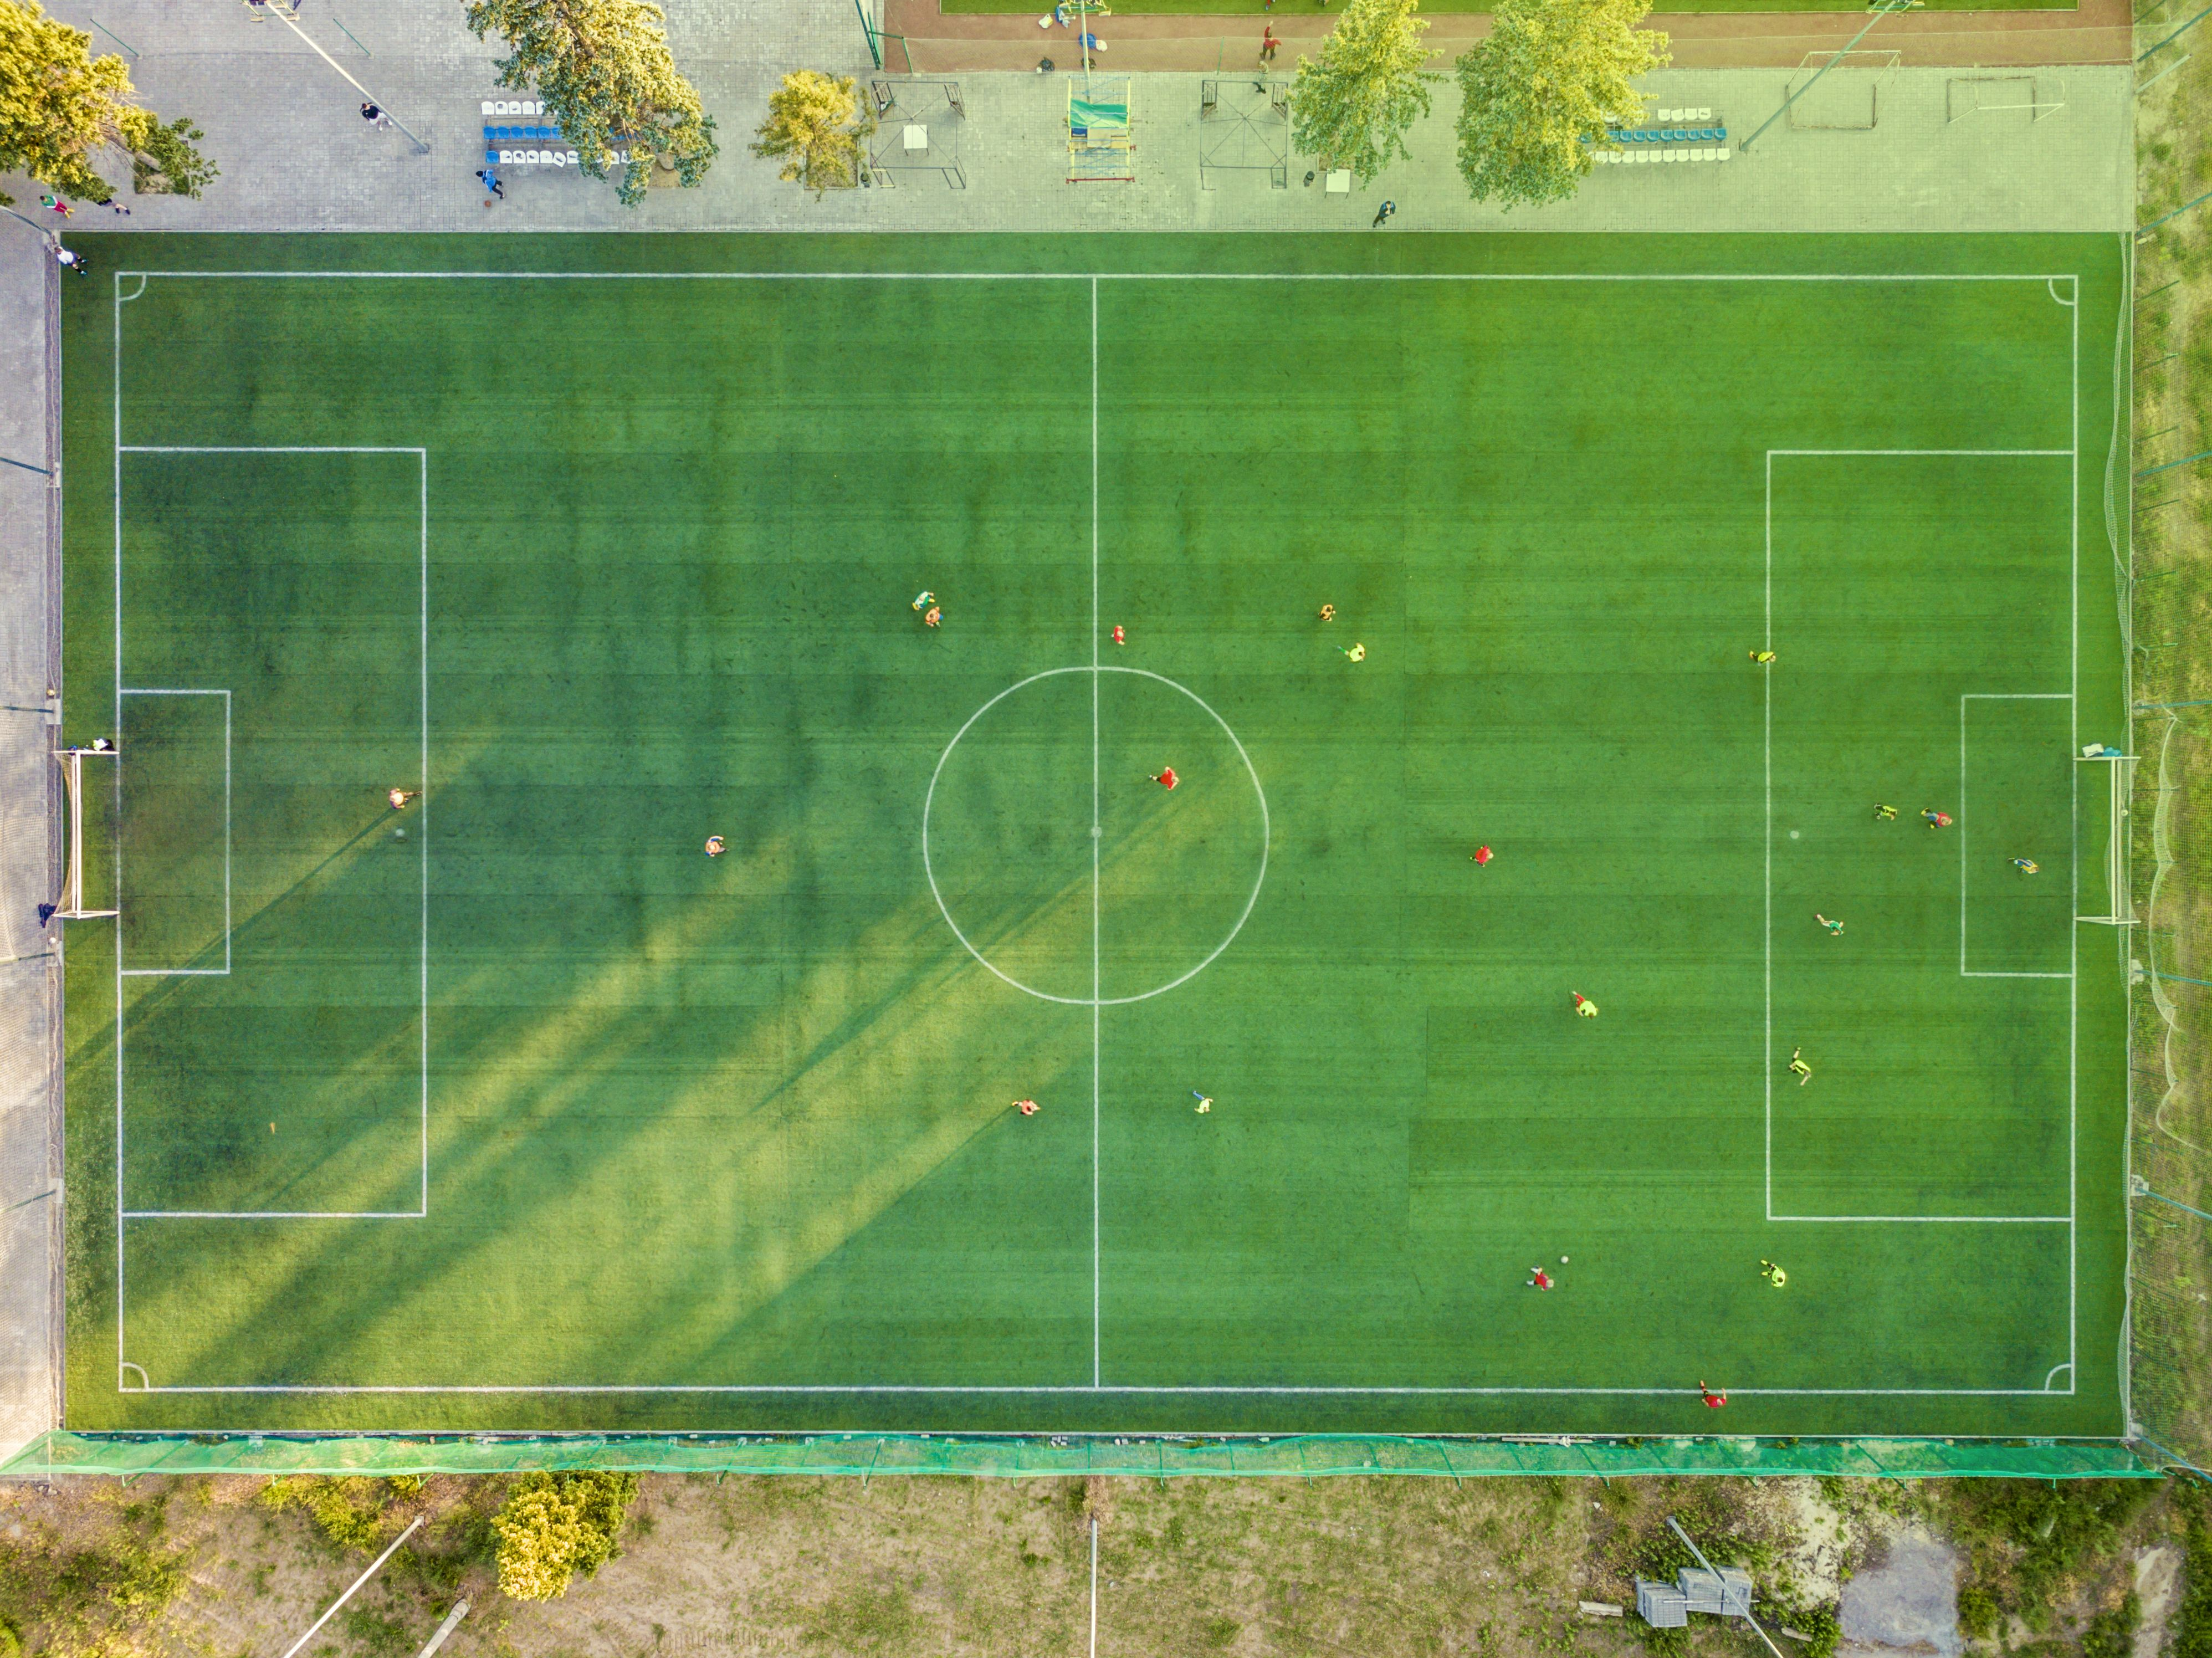 Aerial View Of Soccer Field 1171084 Http Livewallpaperswide Com Games Aerial View Of Soccer Field 1171084 15699 Act Soccer Field Soccer Games For Kids Soccer